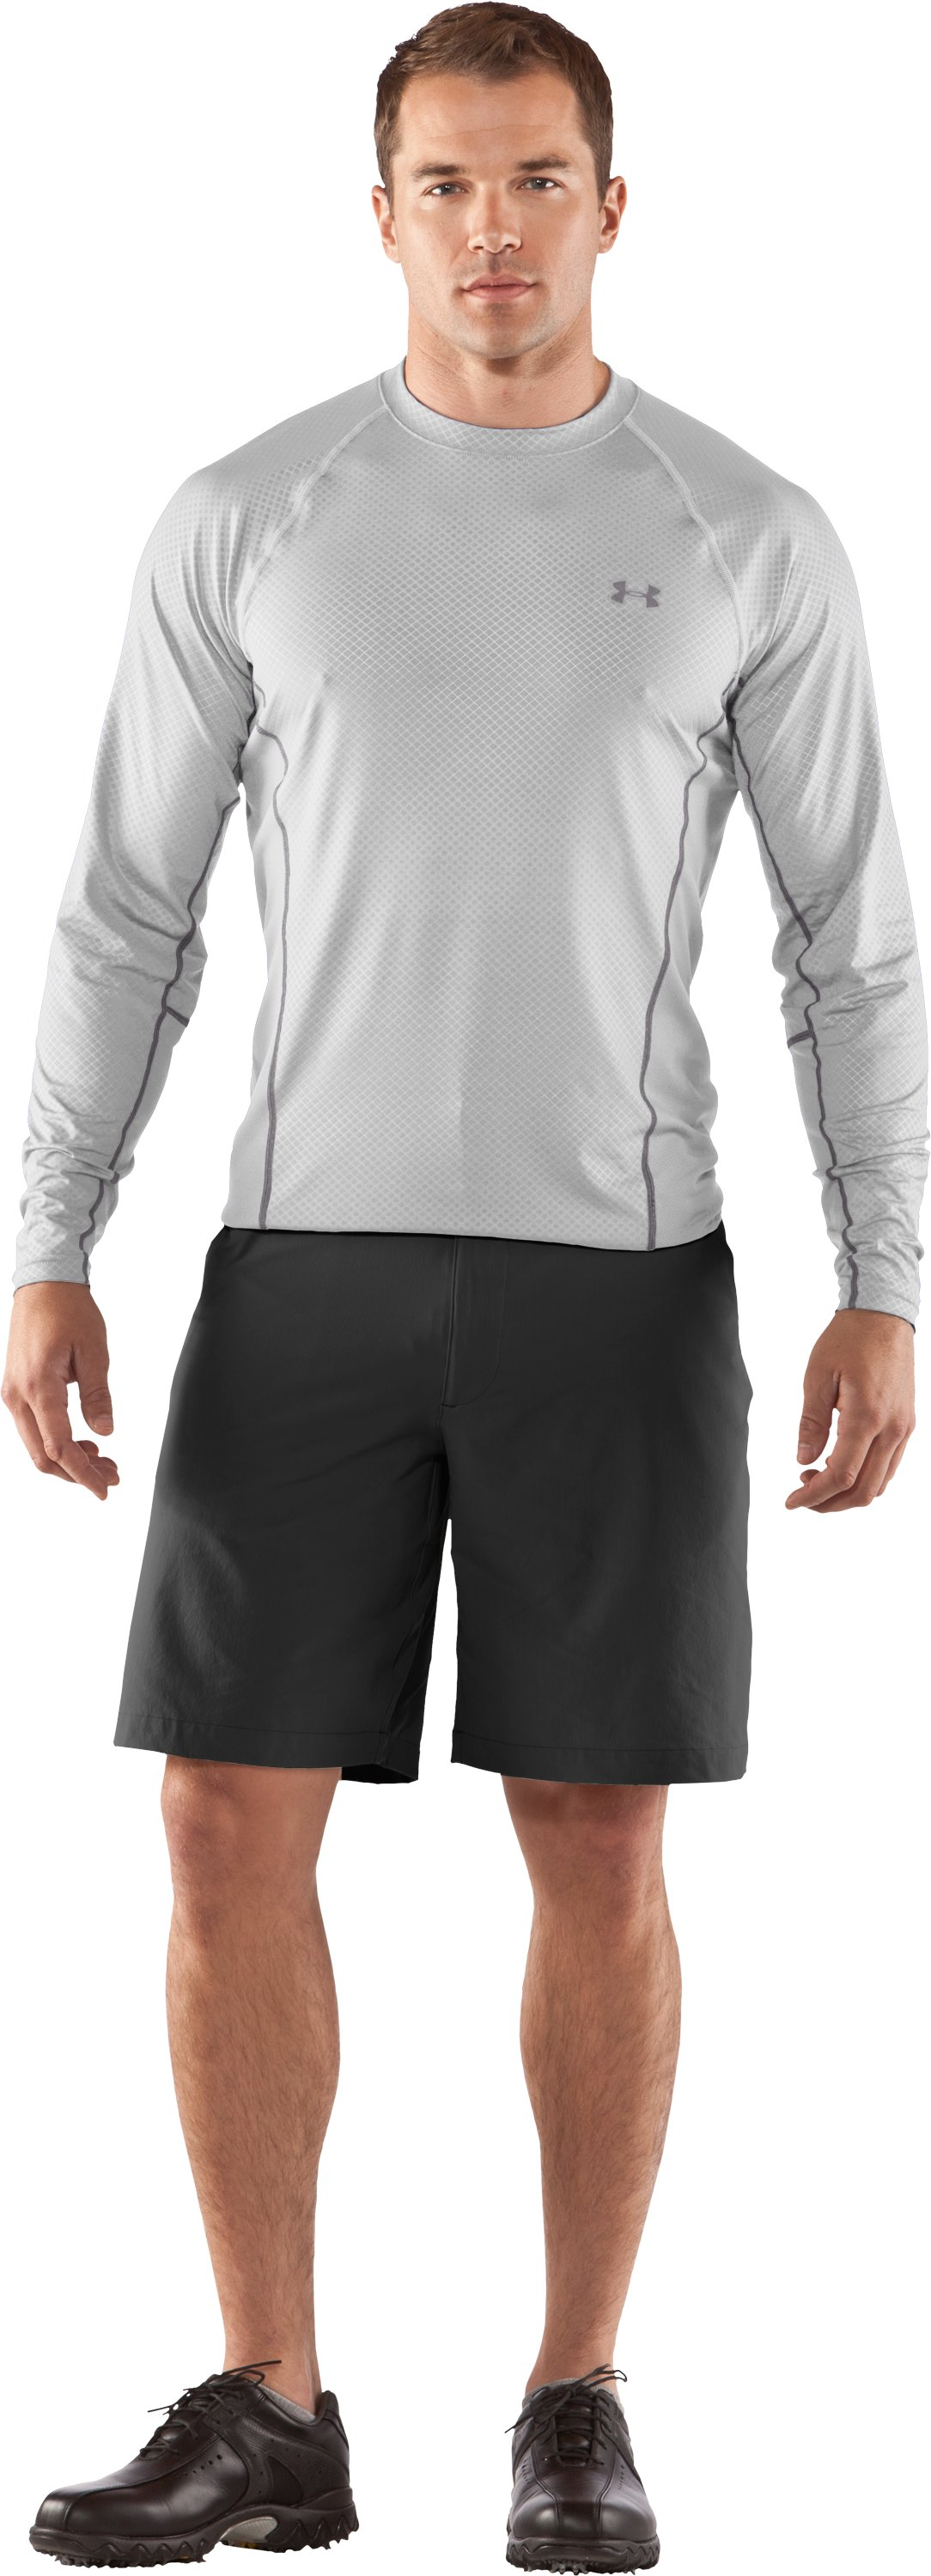 Men's AllSeasonGear® Golf Long Sleeve Shirt, White, zoomed image